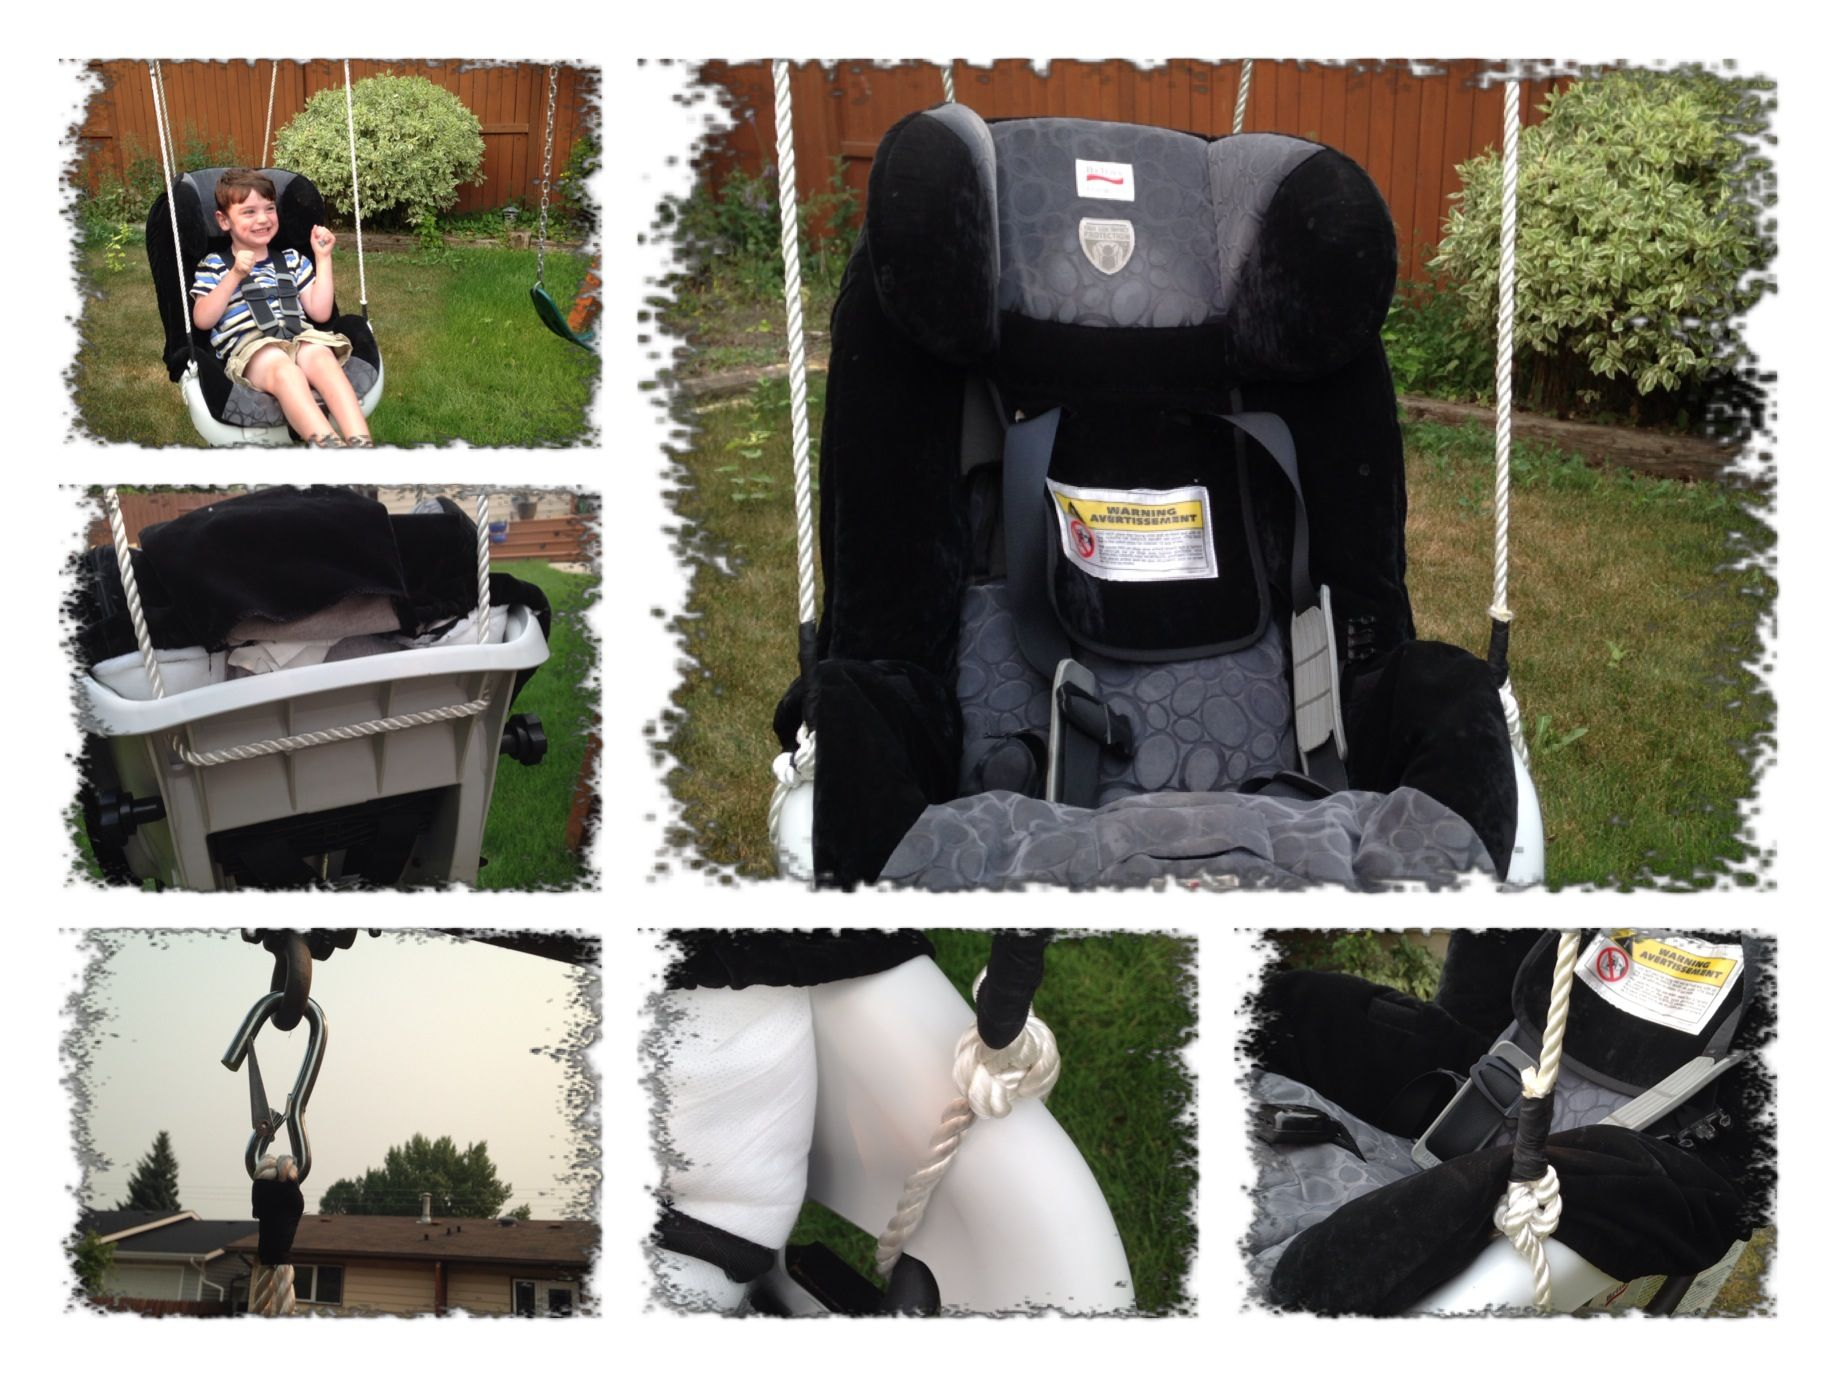 Change an expired car seat into a swing! It works awesome for our son with Spastic Cerebral Palsy!